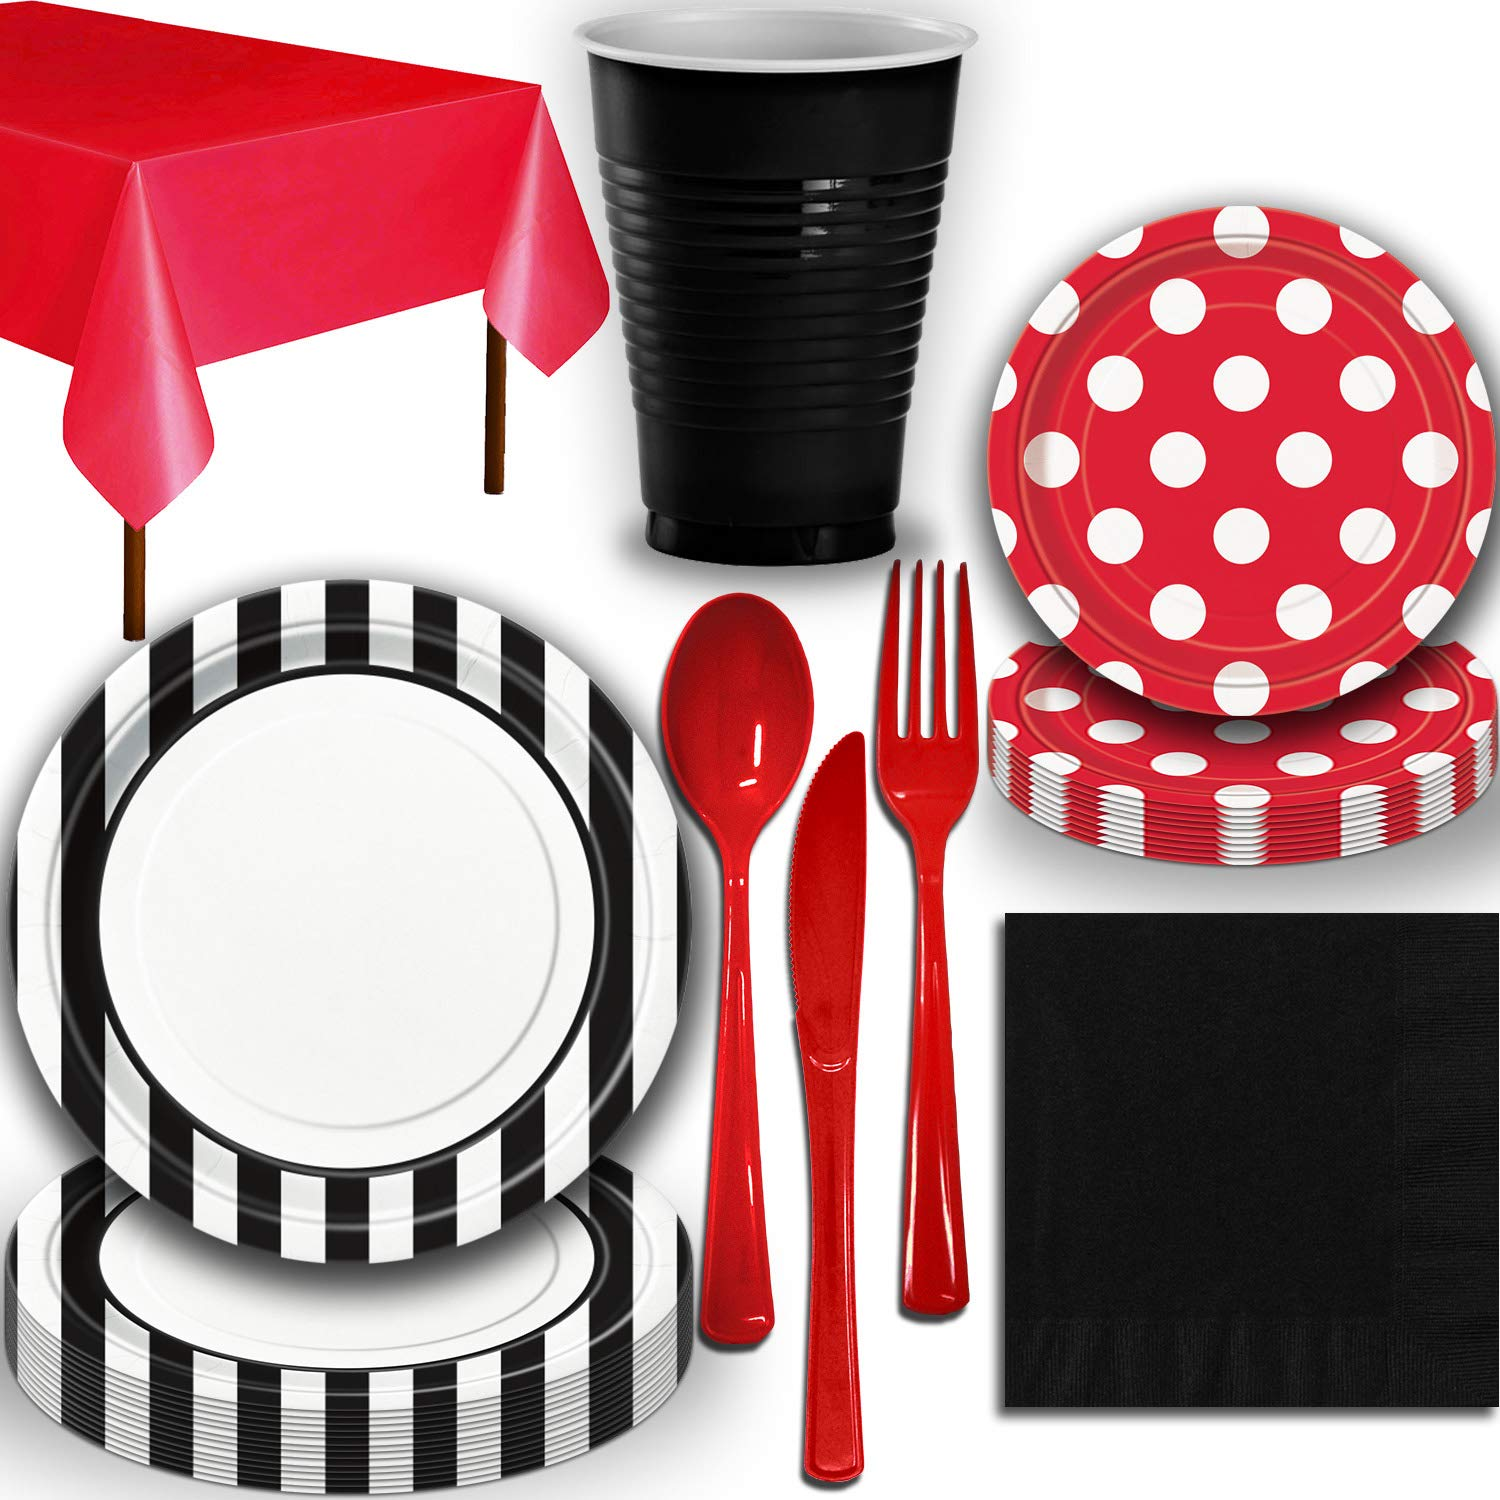 Disposable Tableware, 40 Sets - Midnight Black and Ruby Red - Striped Dinner Plates, Dotted Dessert Plates, Cups, Lunch Napkins, Cutlery, and Tablecloths: Premium Quality Party Supplies Set by HeroFiber (Image #2)